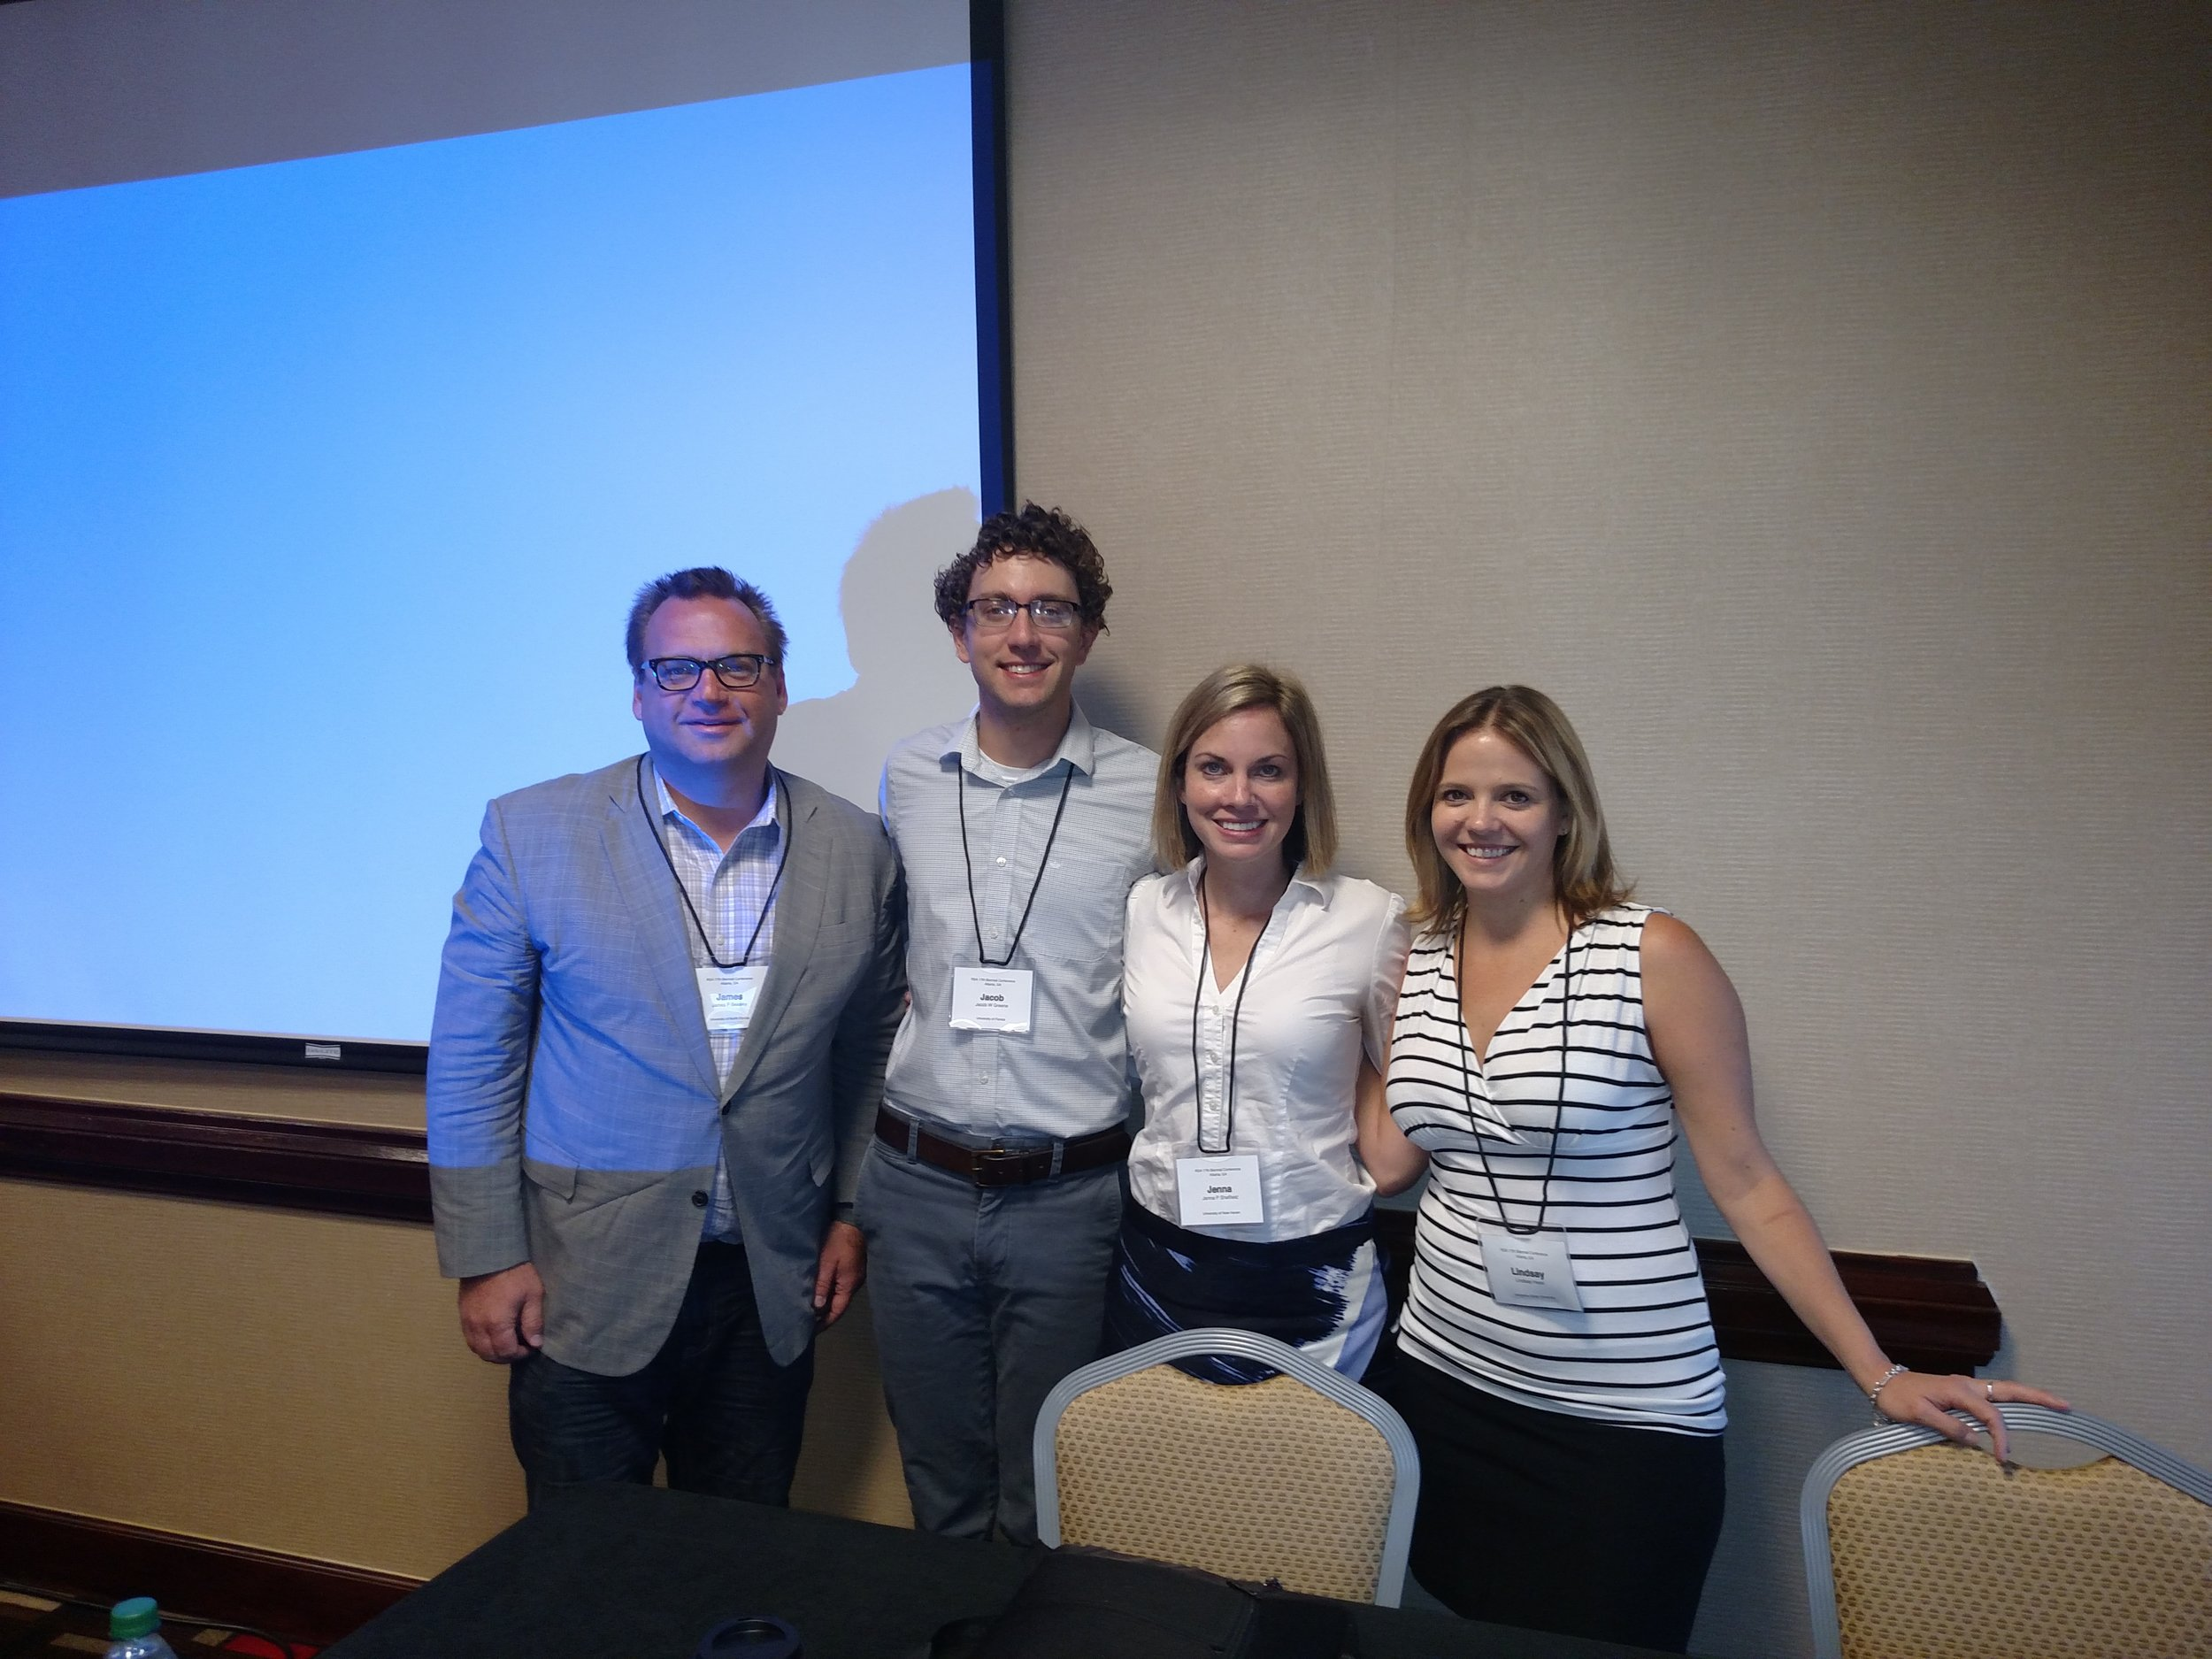 With UNF Rhet/Comp alums Jacob Greene (UF), Jenna Pack Sheffield (Arizona), and Lindsay Head (LSU) at the Spring 2016 Conference of the Rhetoric Society of America, Atlanta, GA.